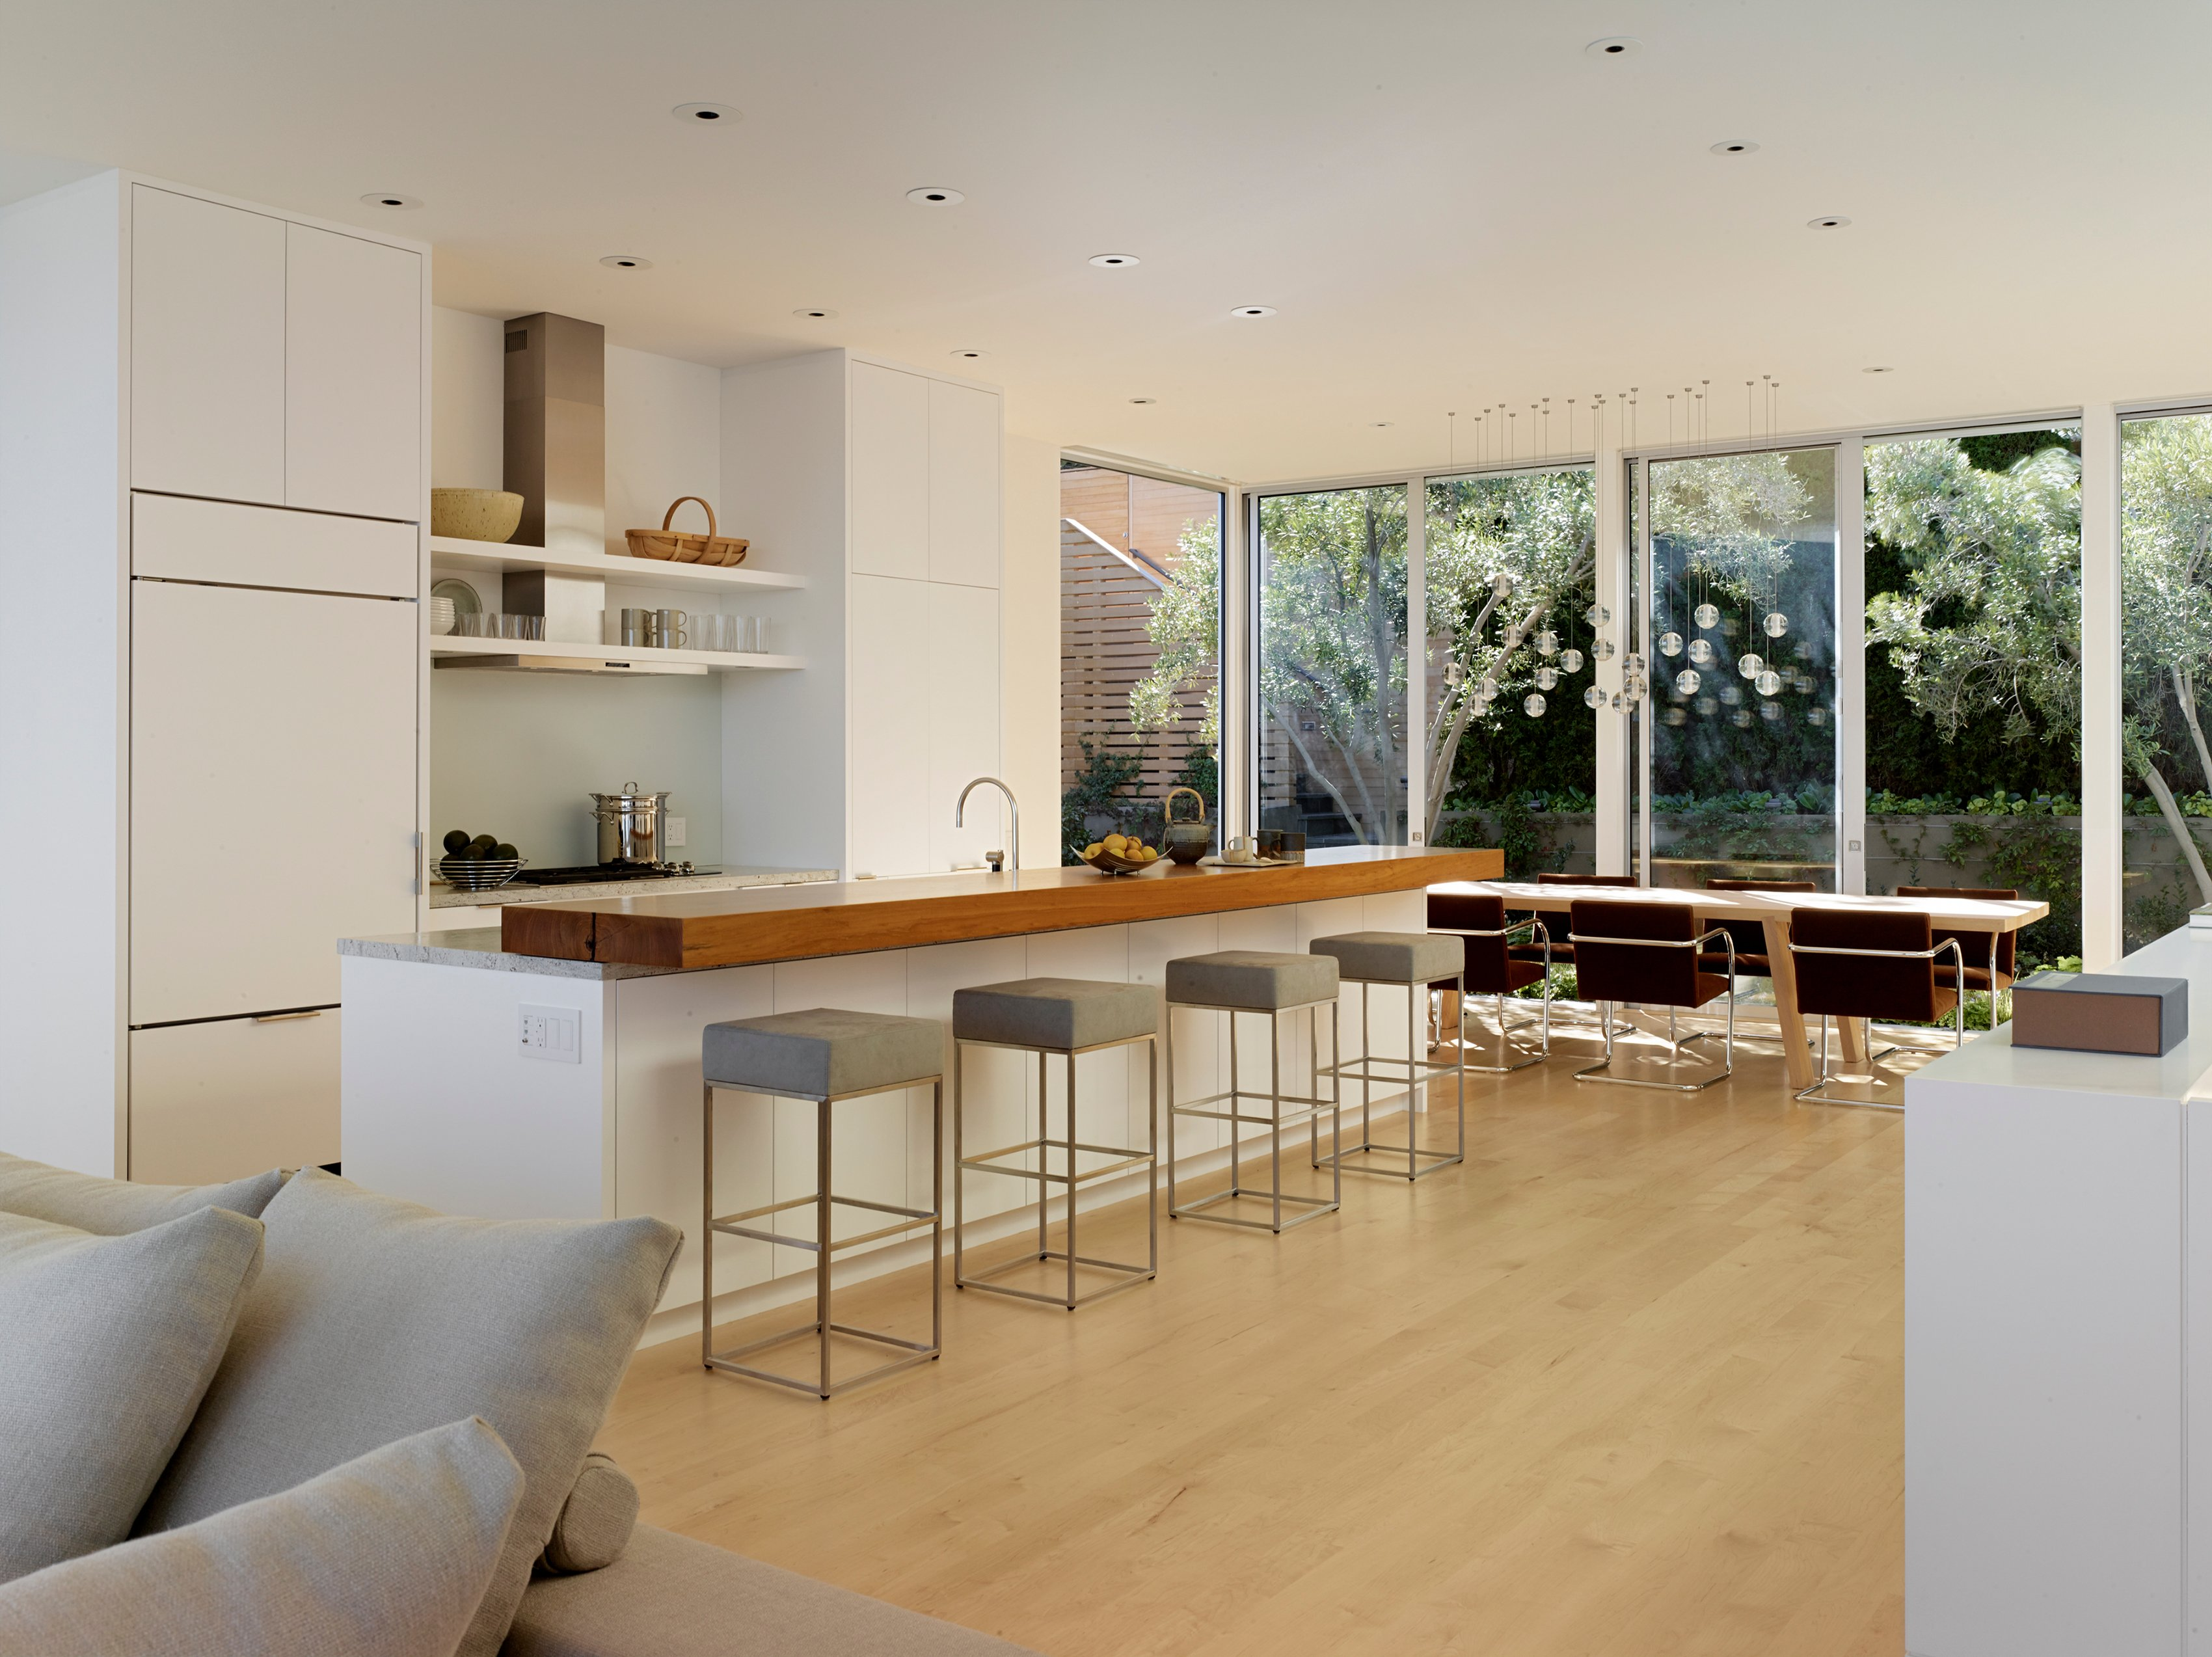 From the other side of the room, the lush private garden is visible through the floor-to-ceiling windows. The steep hill allows the second floor to have both easy backyard access and gorgeous views. The bar stools at the kitchen island are simple in design, with a cushy square pad to sit on.